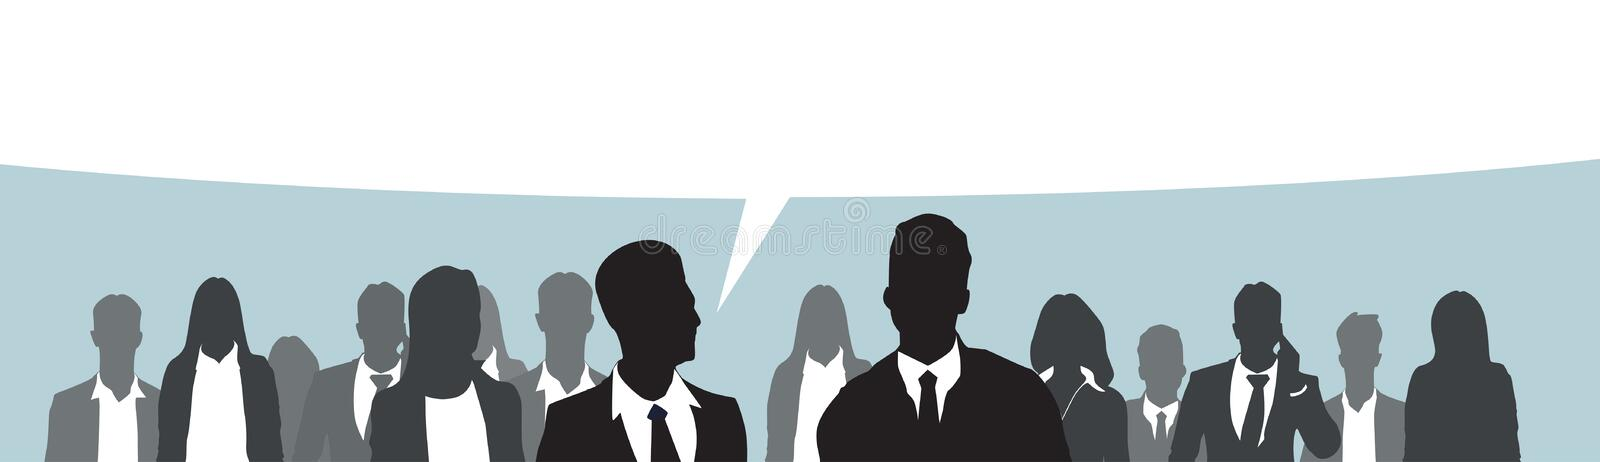 Silhouette Businesspeople Group Business Man And Woman Team Chat Bubble royalty free illustration